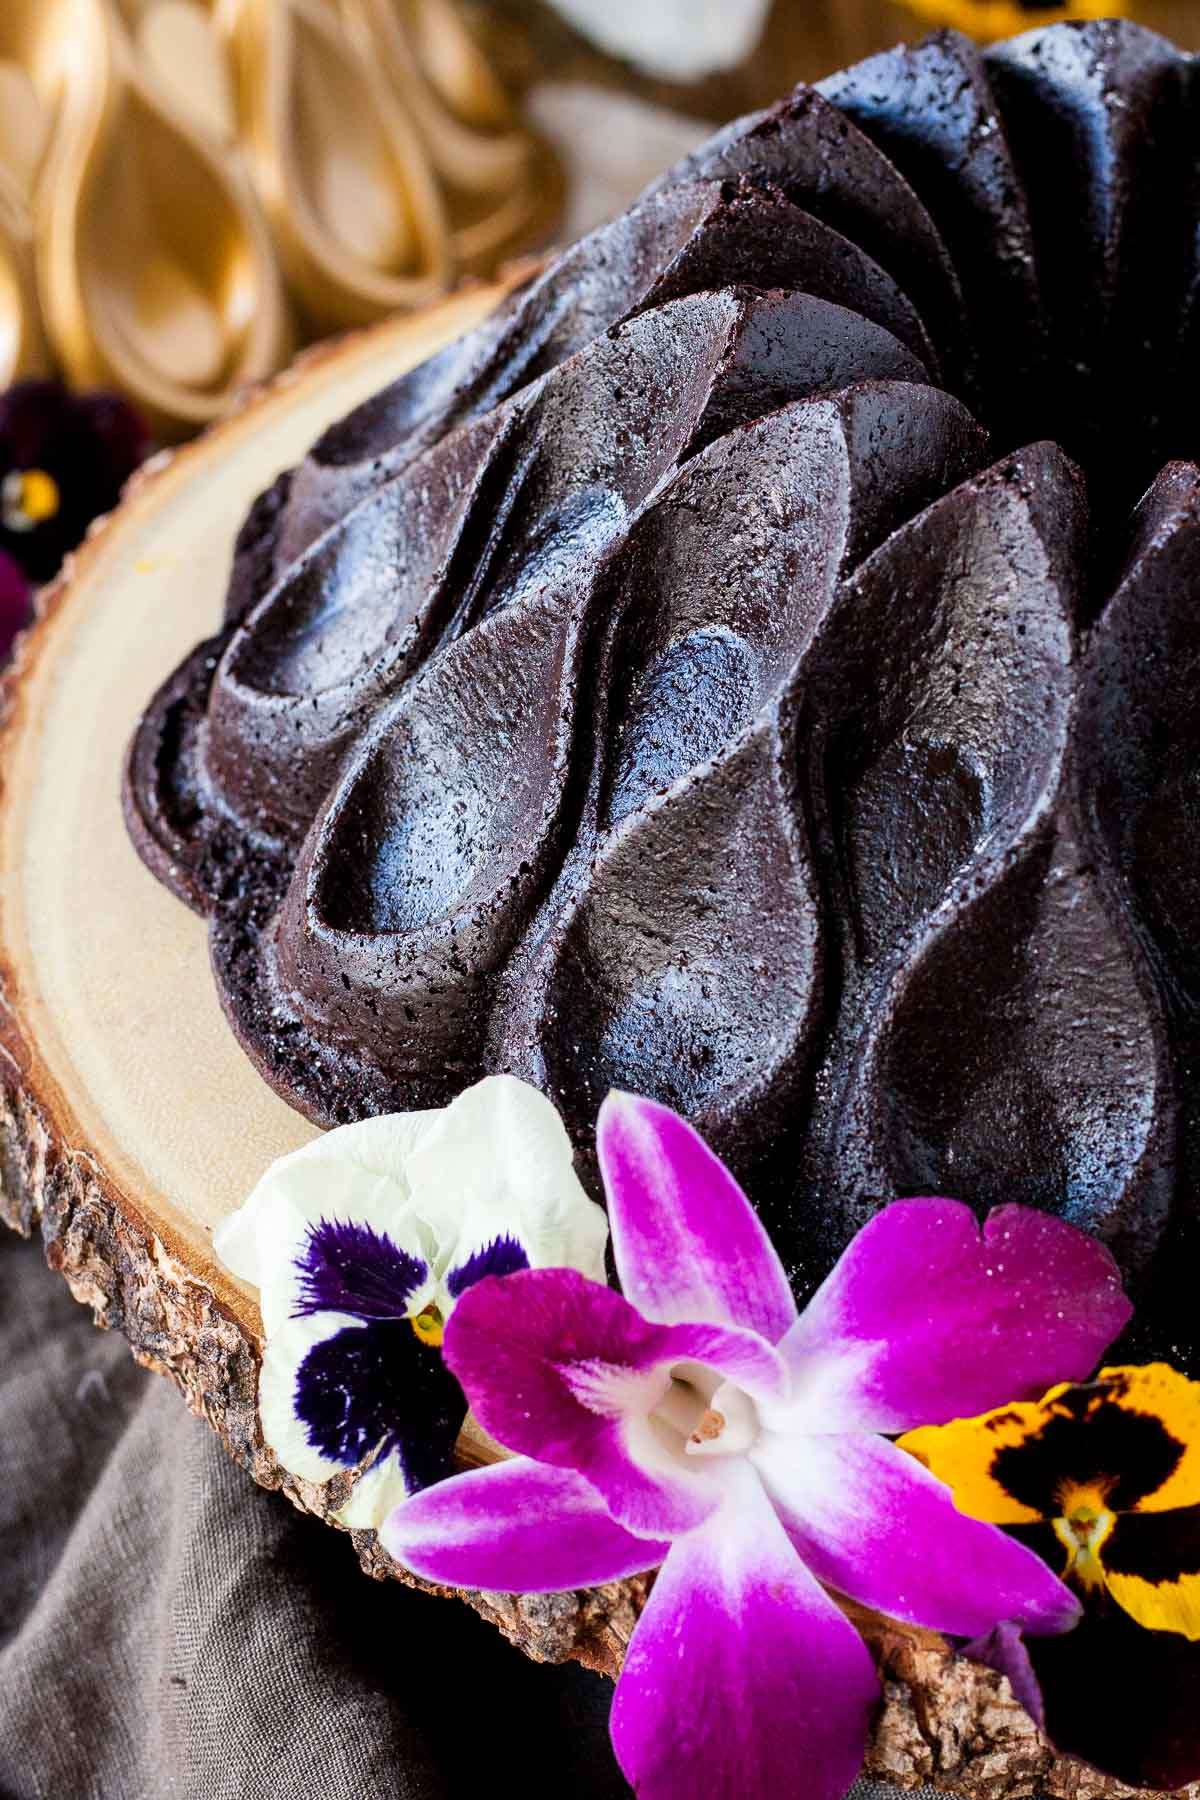 Chocolate Cheesecake Stuffed Bundt Cake Liv For Double Layer Cheese Original The In This Delicious A Rich